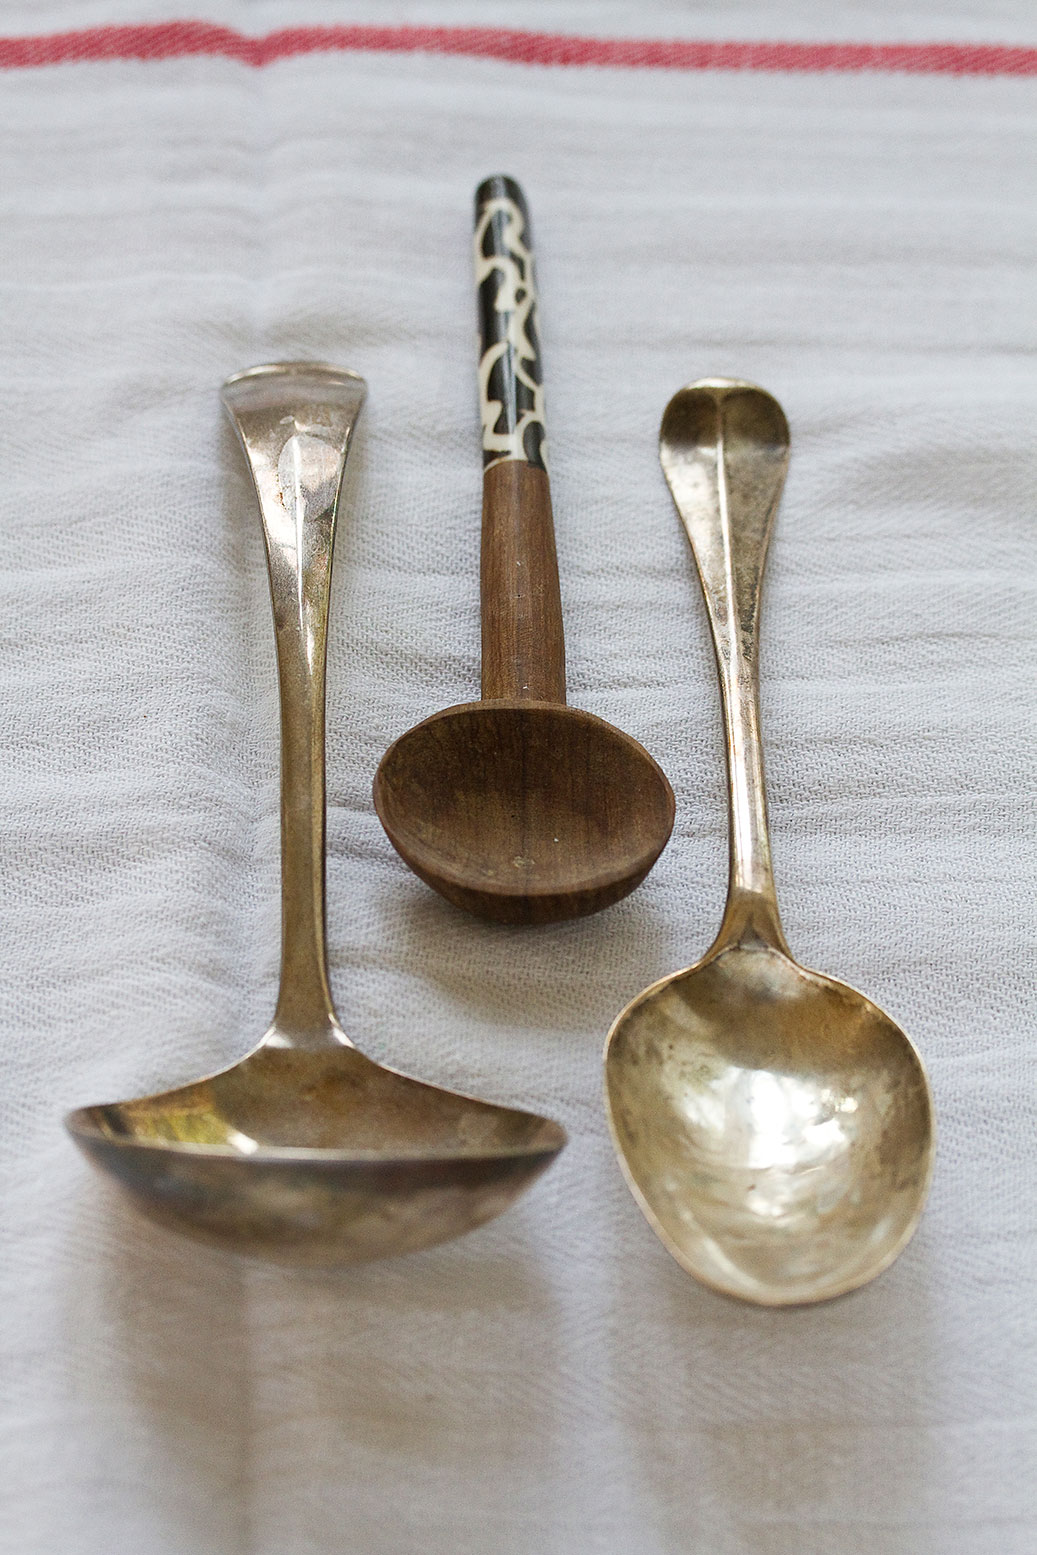 Three spoons on a cloth